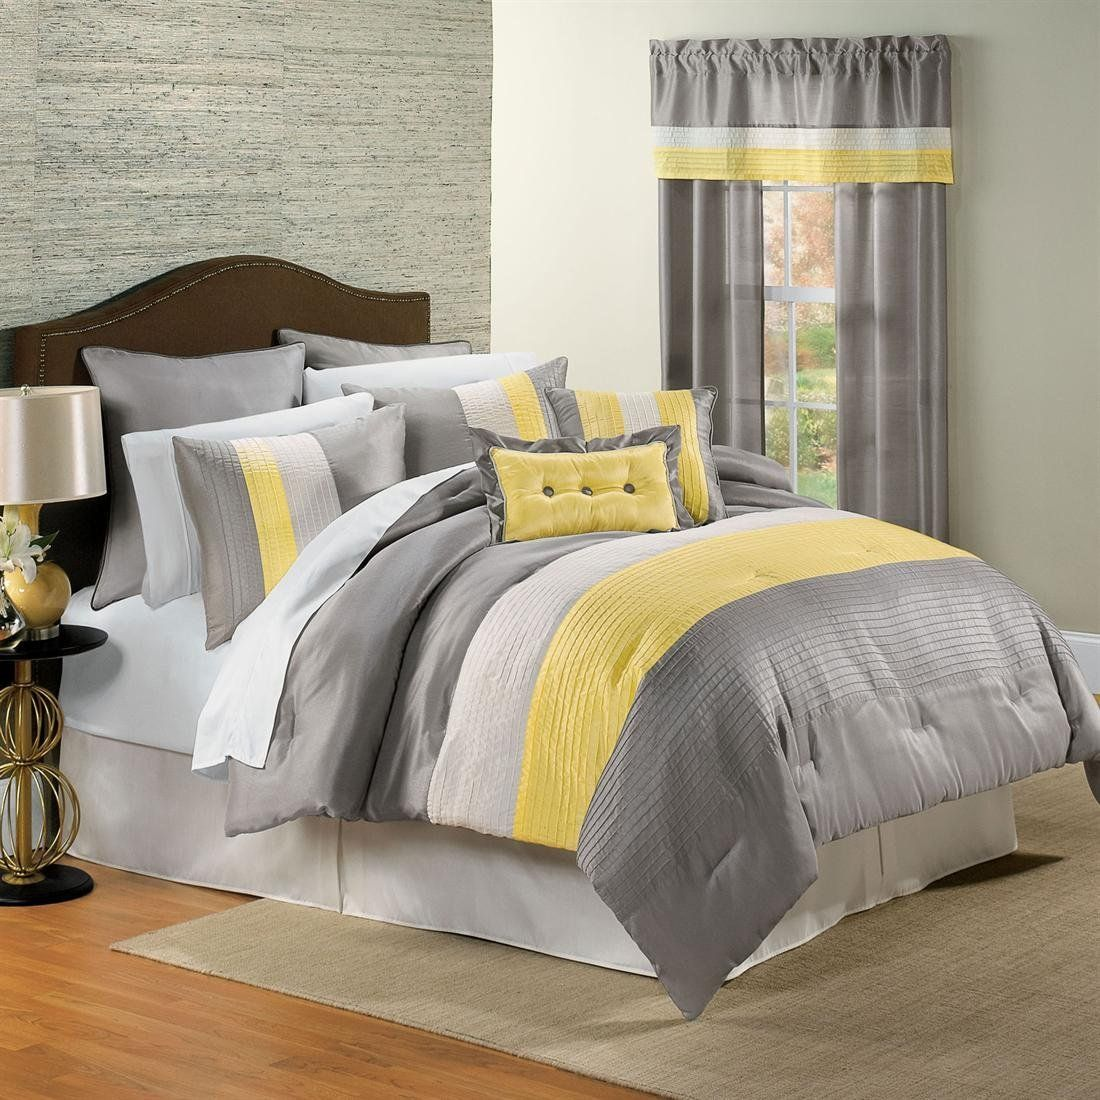 Brown and yellow bedroom - Apartments Cheerful Gray And Yellow Bedroom Ideas With